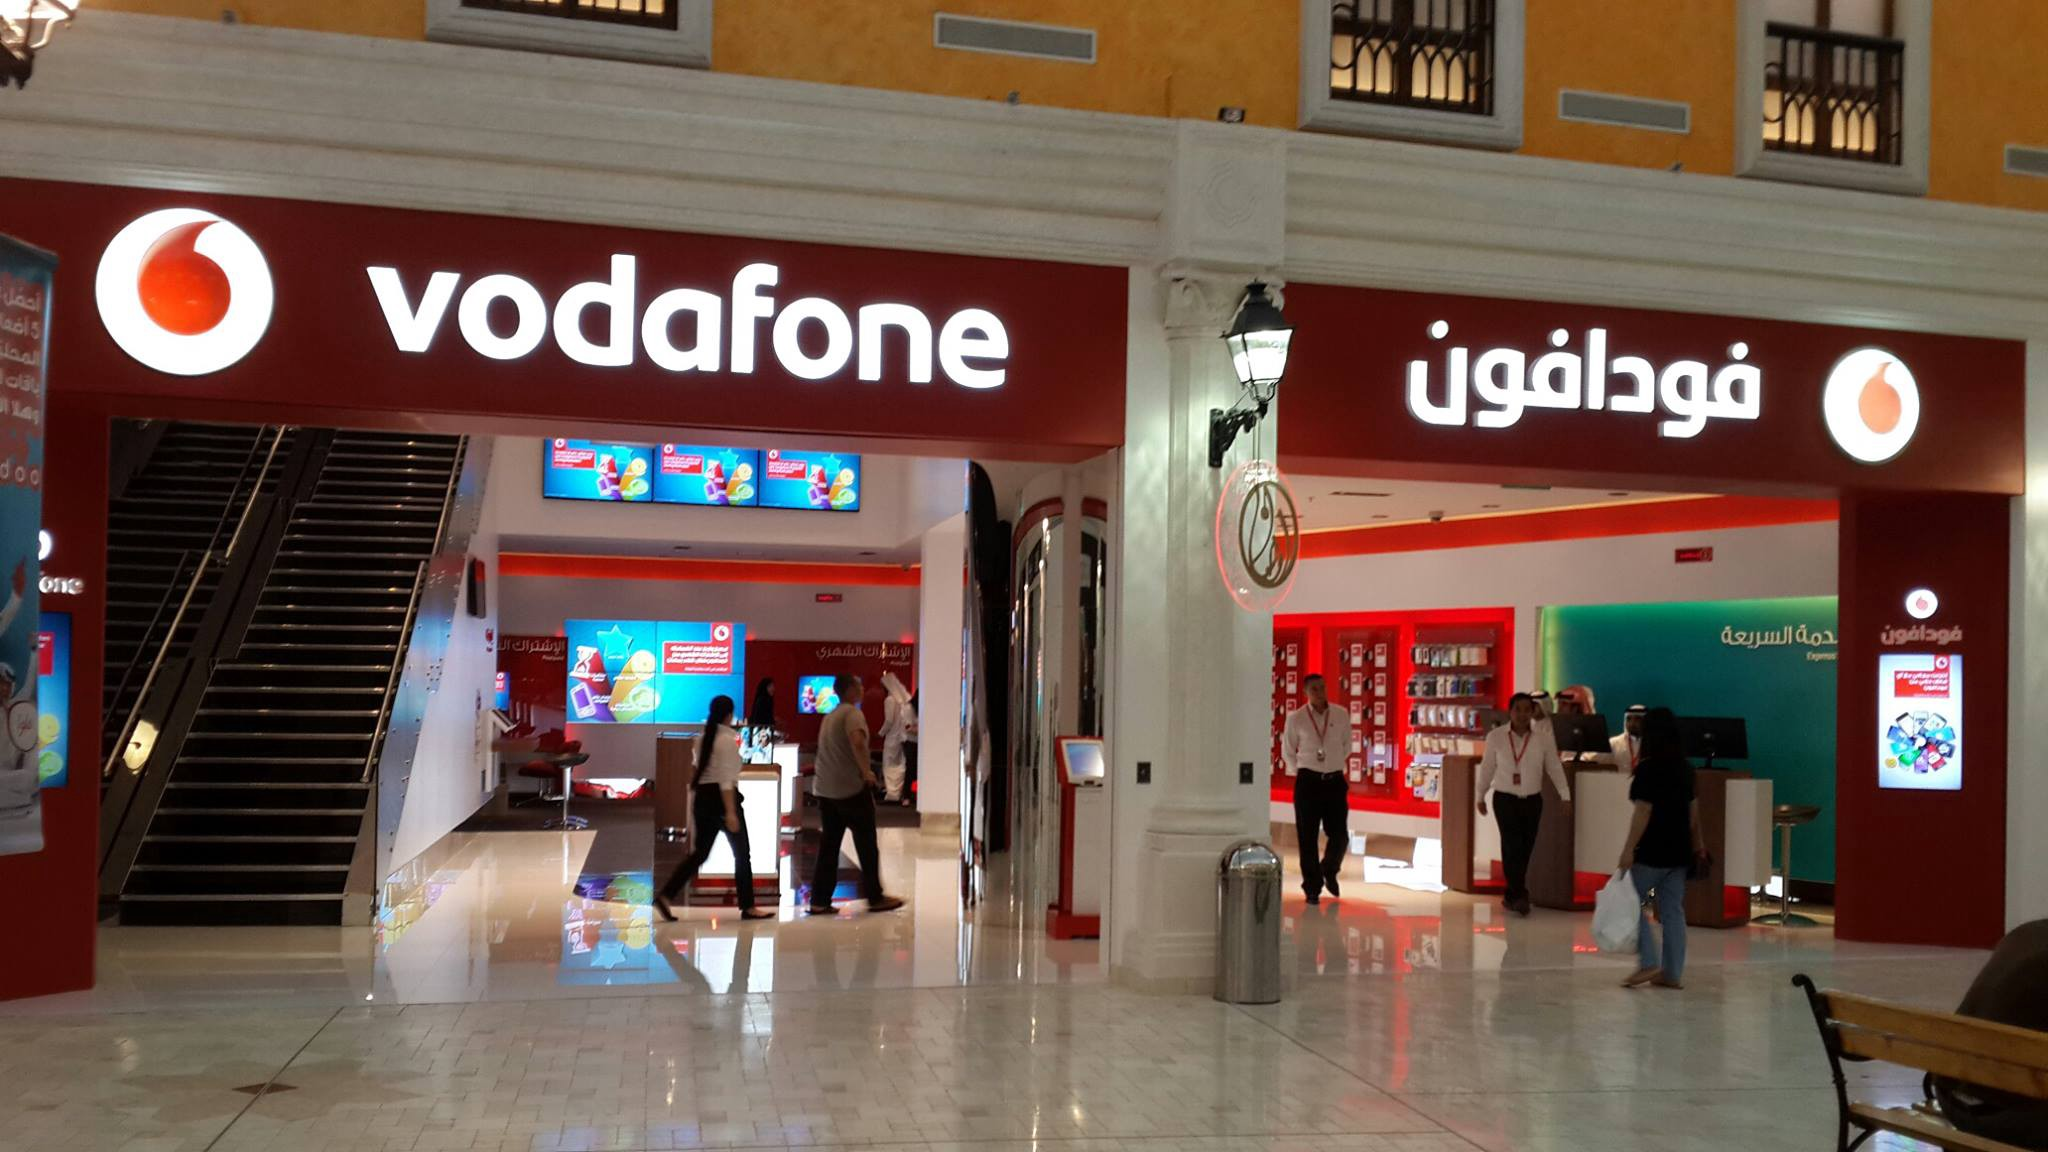 Vodafone Qatar network down due to 'technical issues'